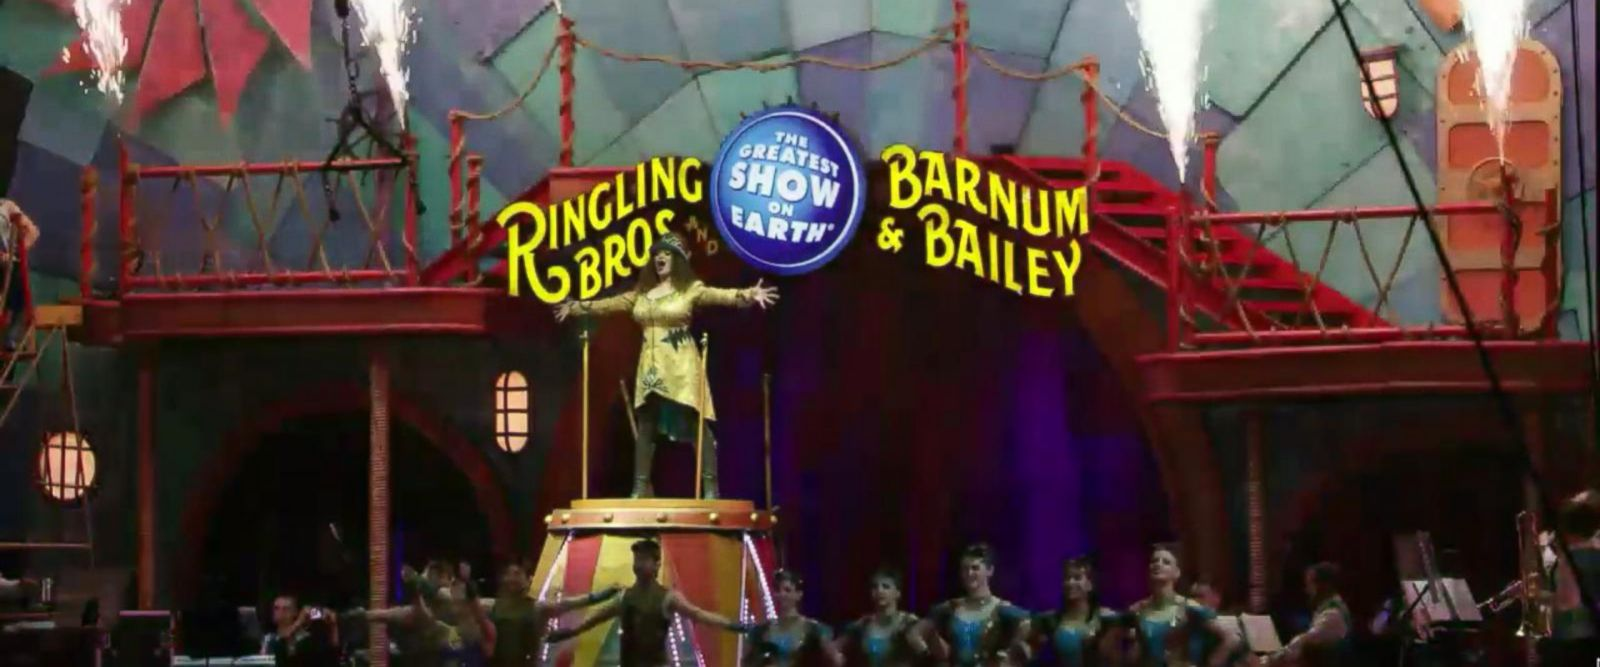 VIDEO: Final Act for the greatest show on Earth